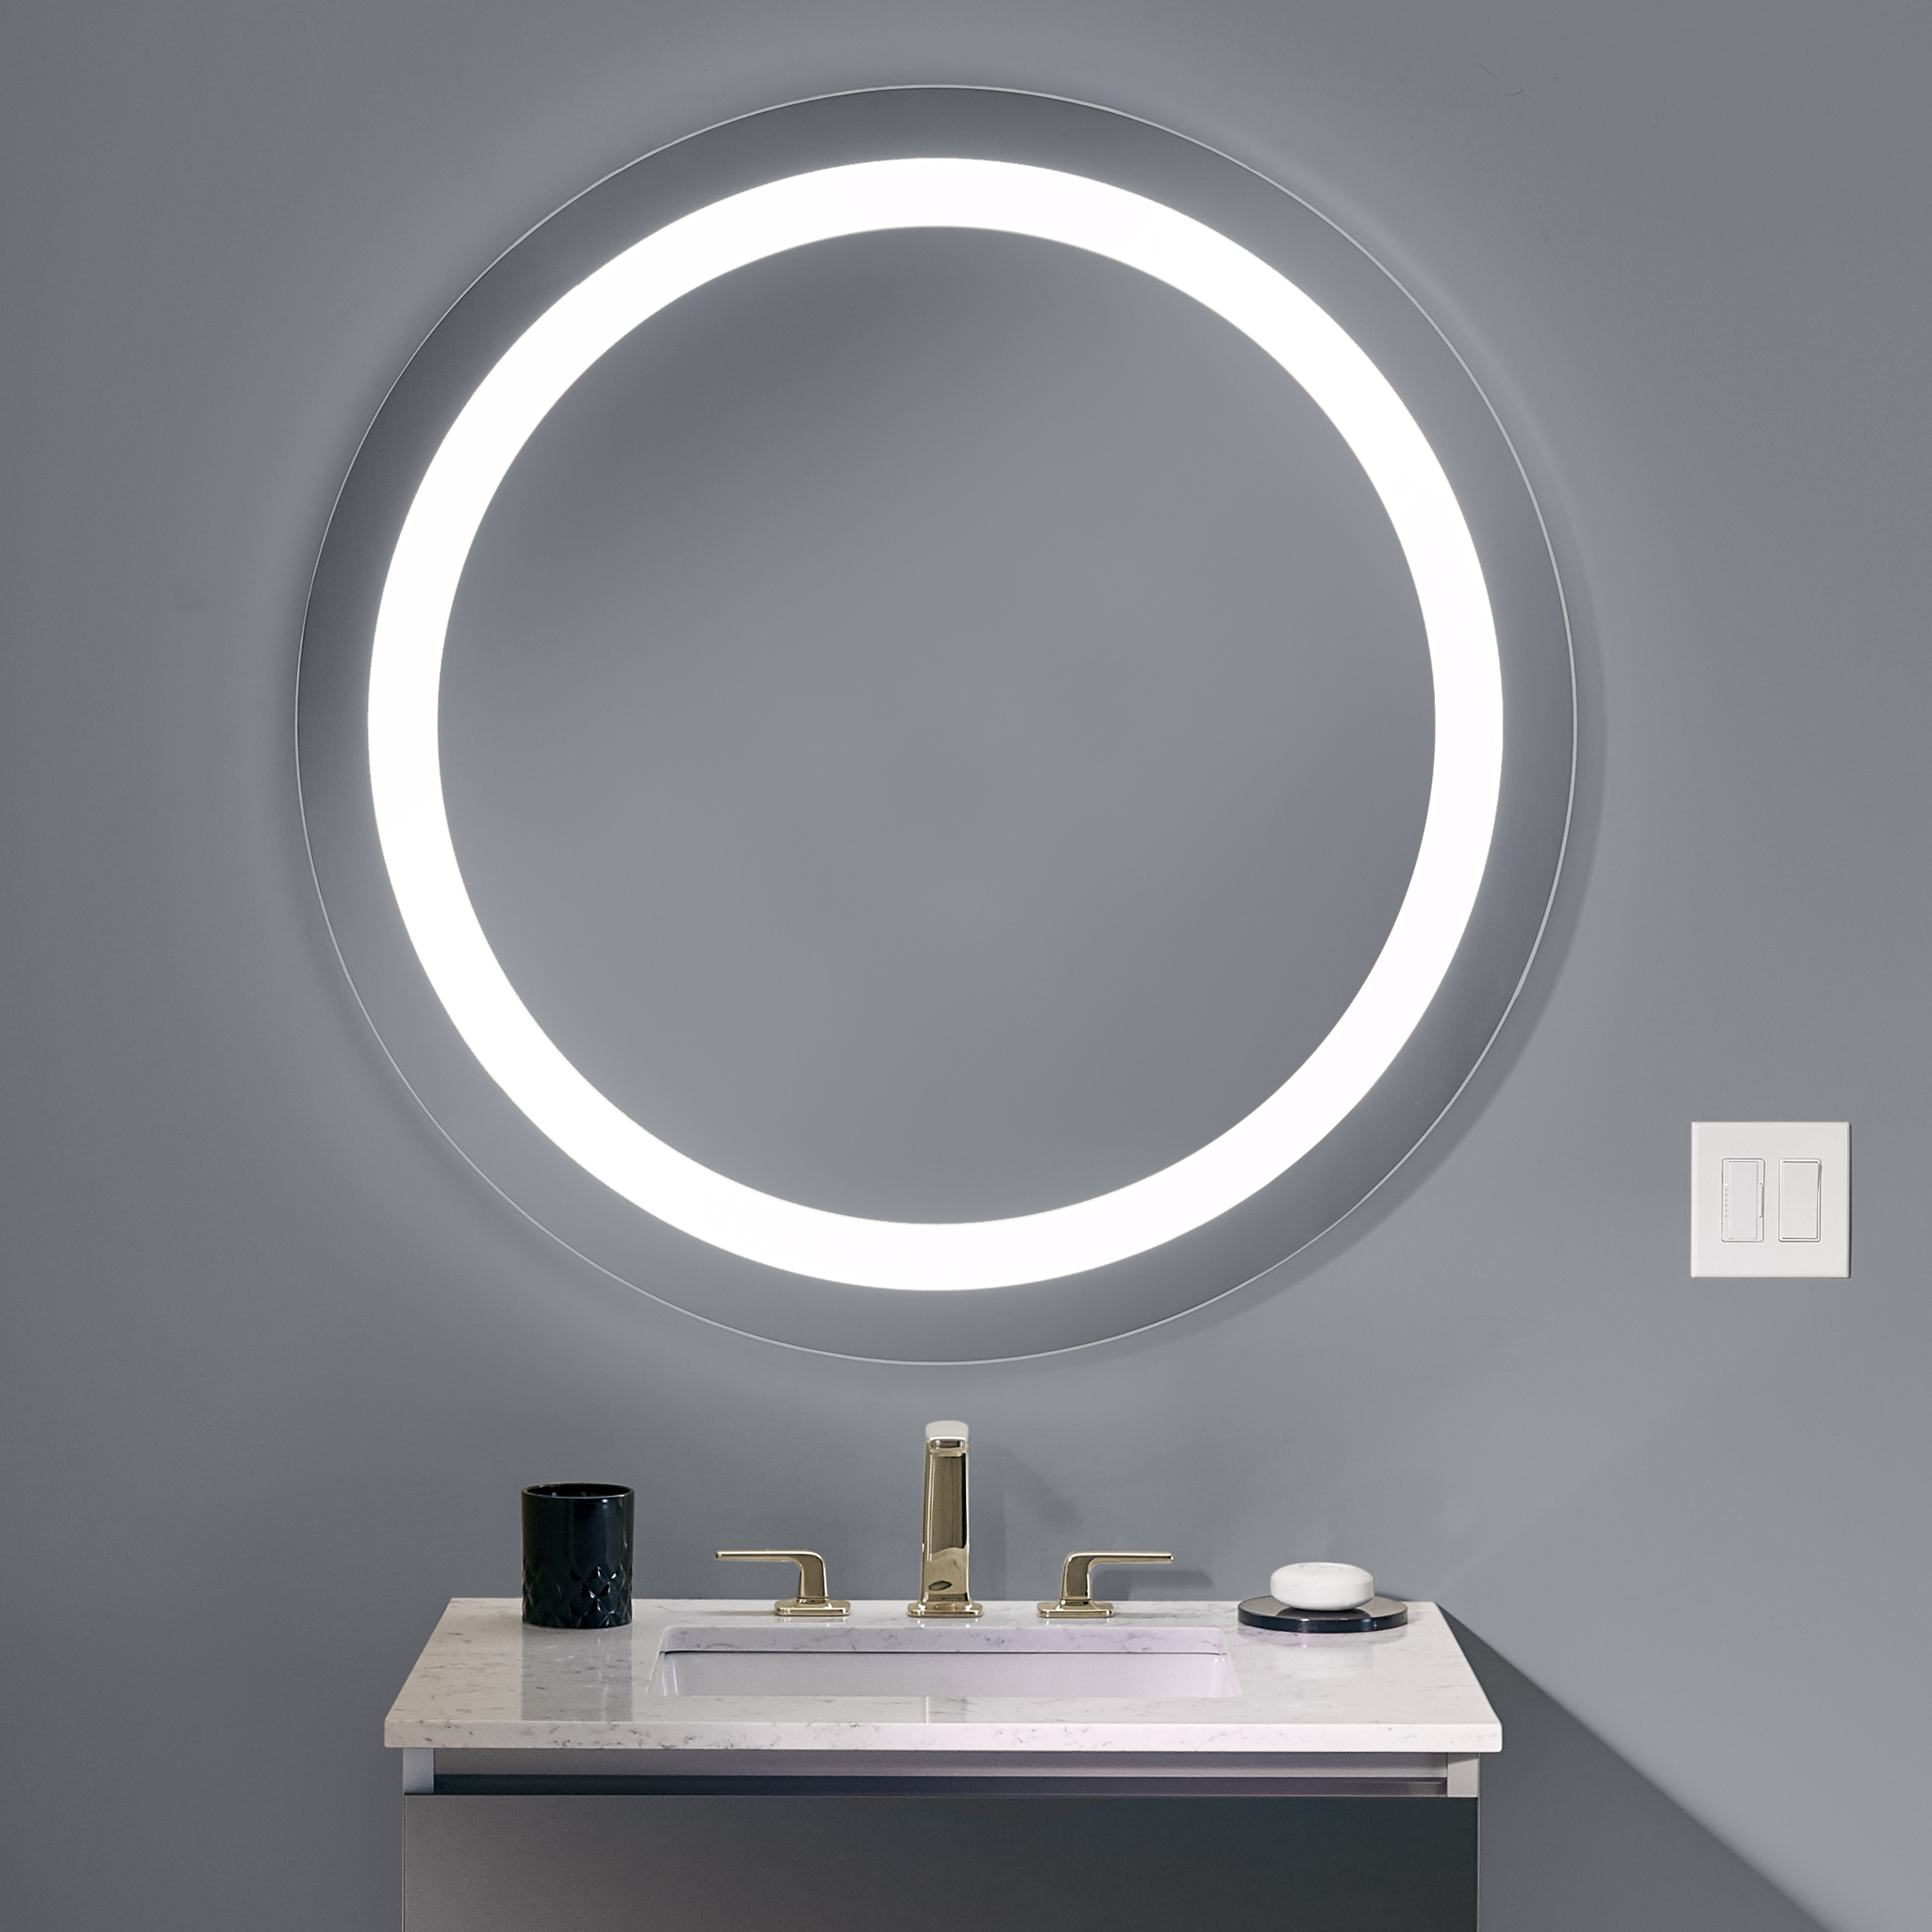 Bathroom Mirrors | Robern With Regard To Marion Wall Mirrors (Image 3 of 20)